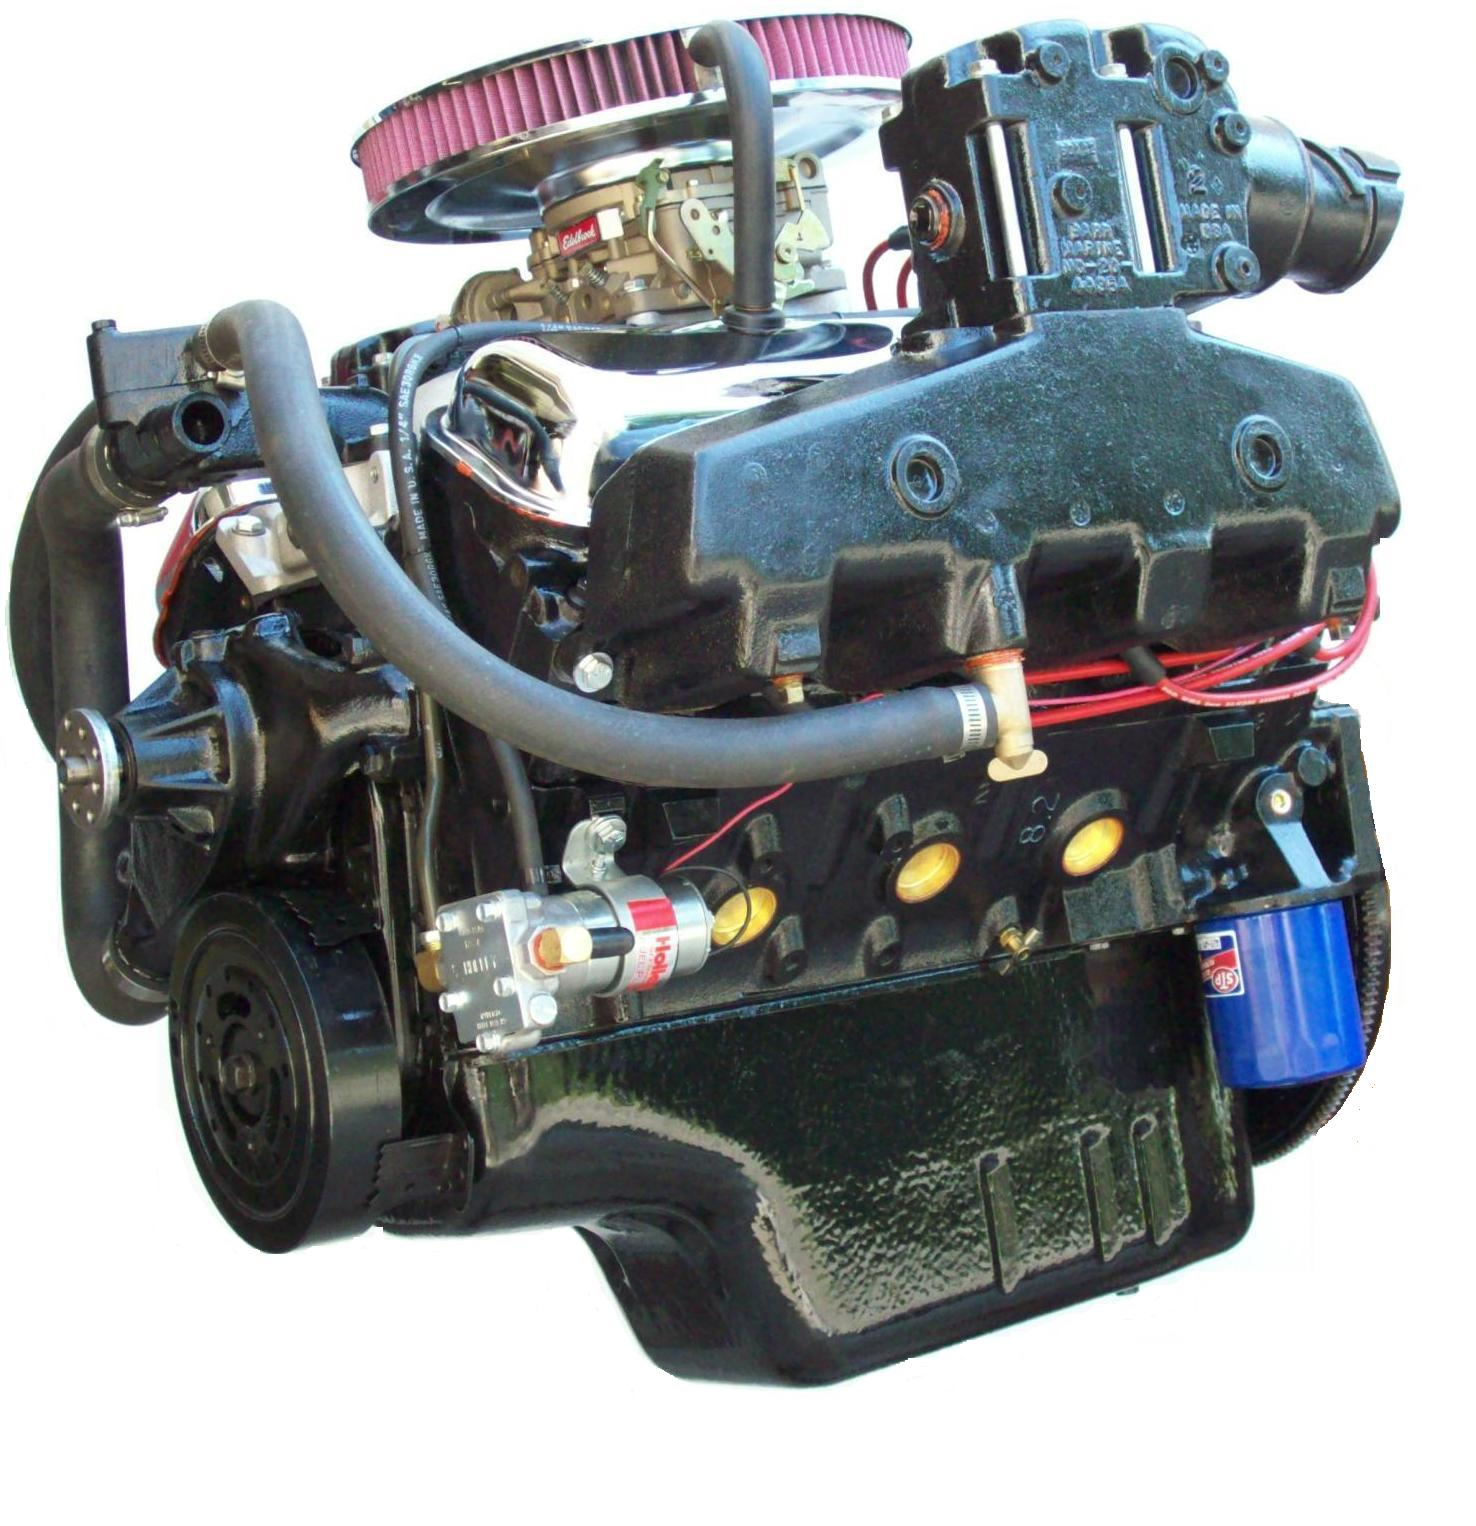 502 Mercruiser open cooled marine remanufactured engines inboard  at reclaimingppi.co